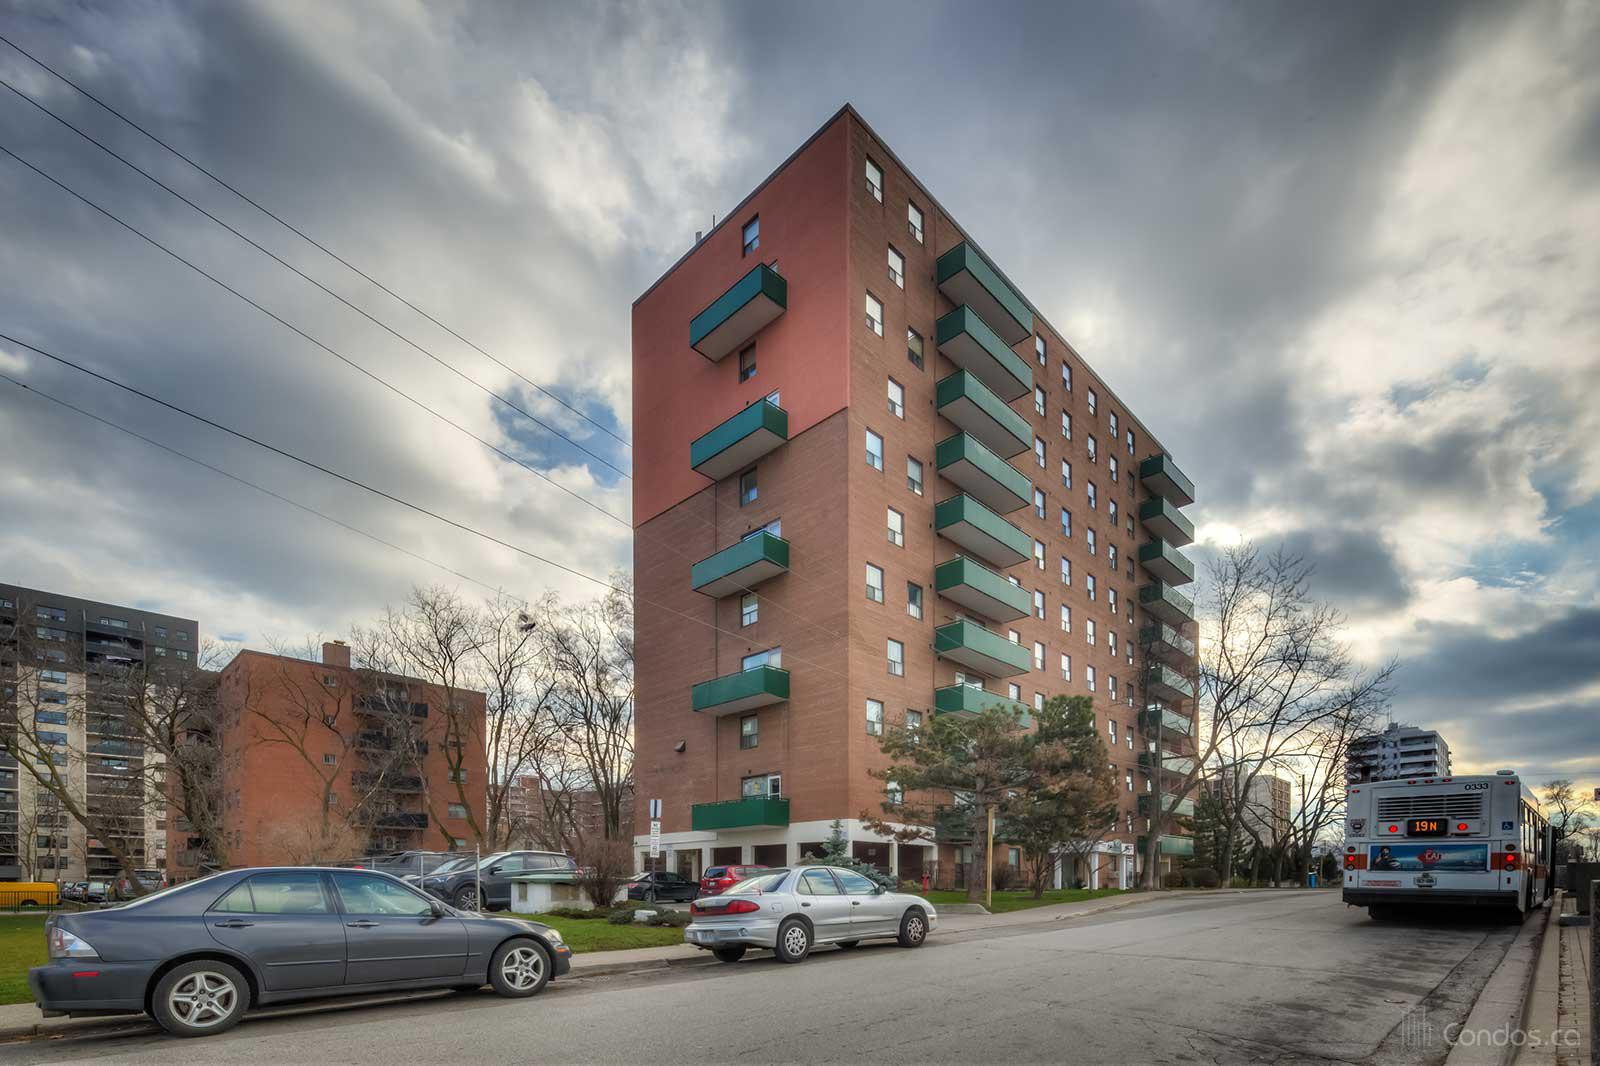 49 Queen Condos at 49 Queen St E, Mississauga 0